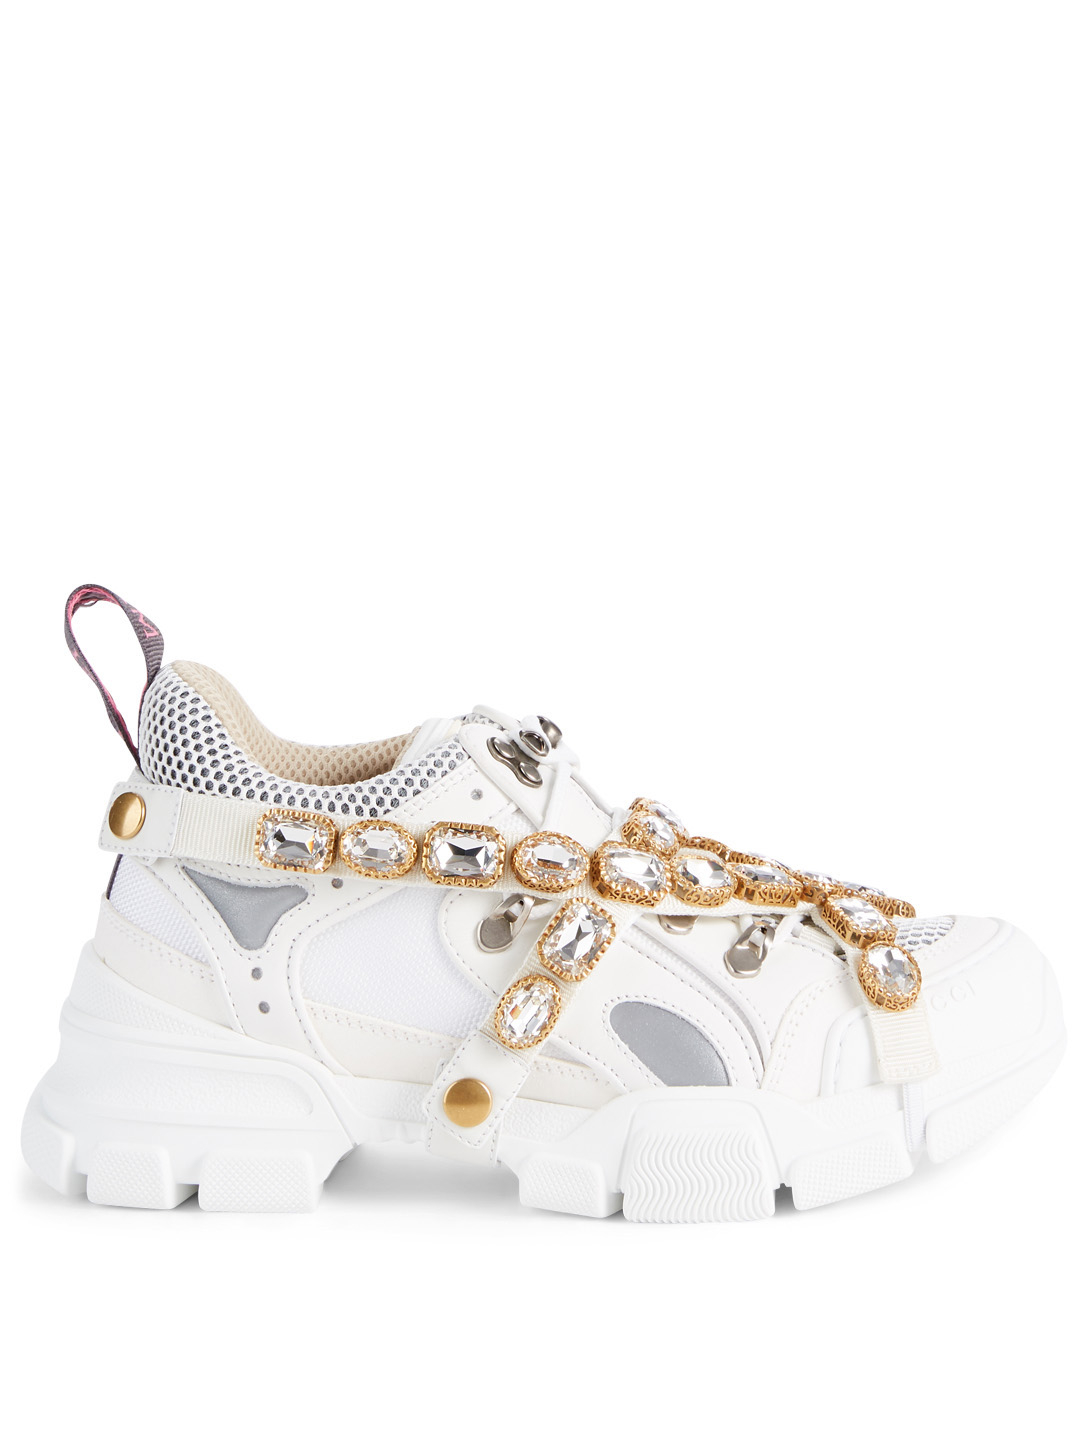 399651f59 GUCCI Flashtrek Sneakers With Removable Crystal Straps